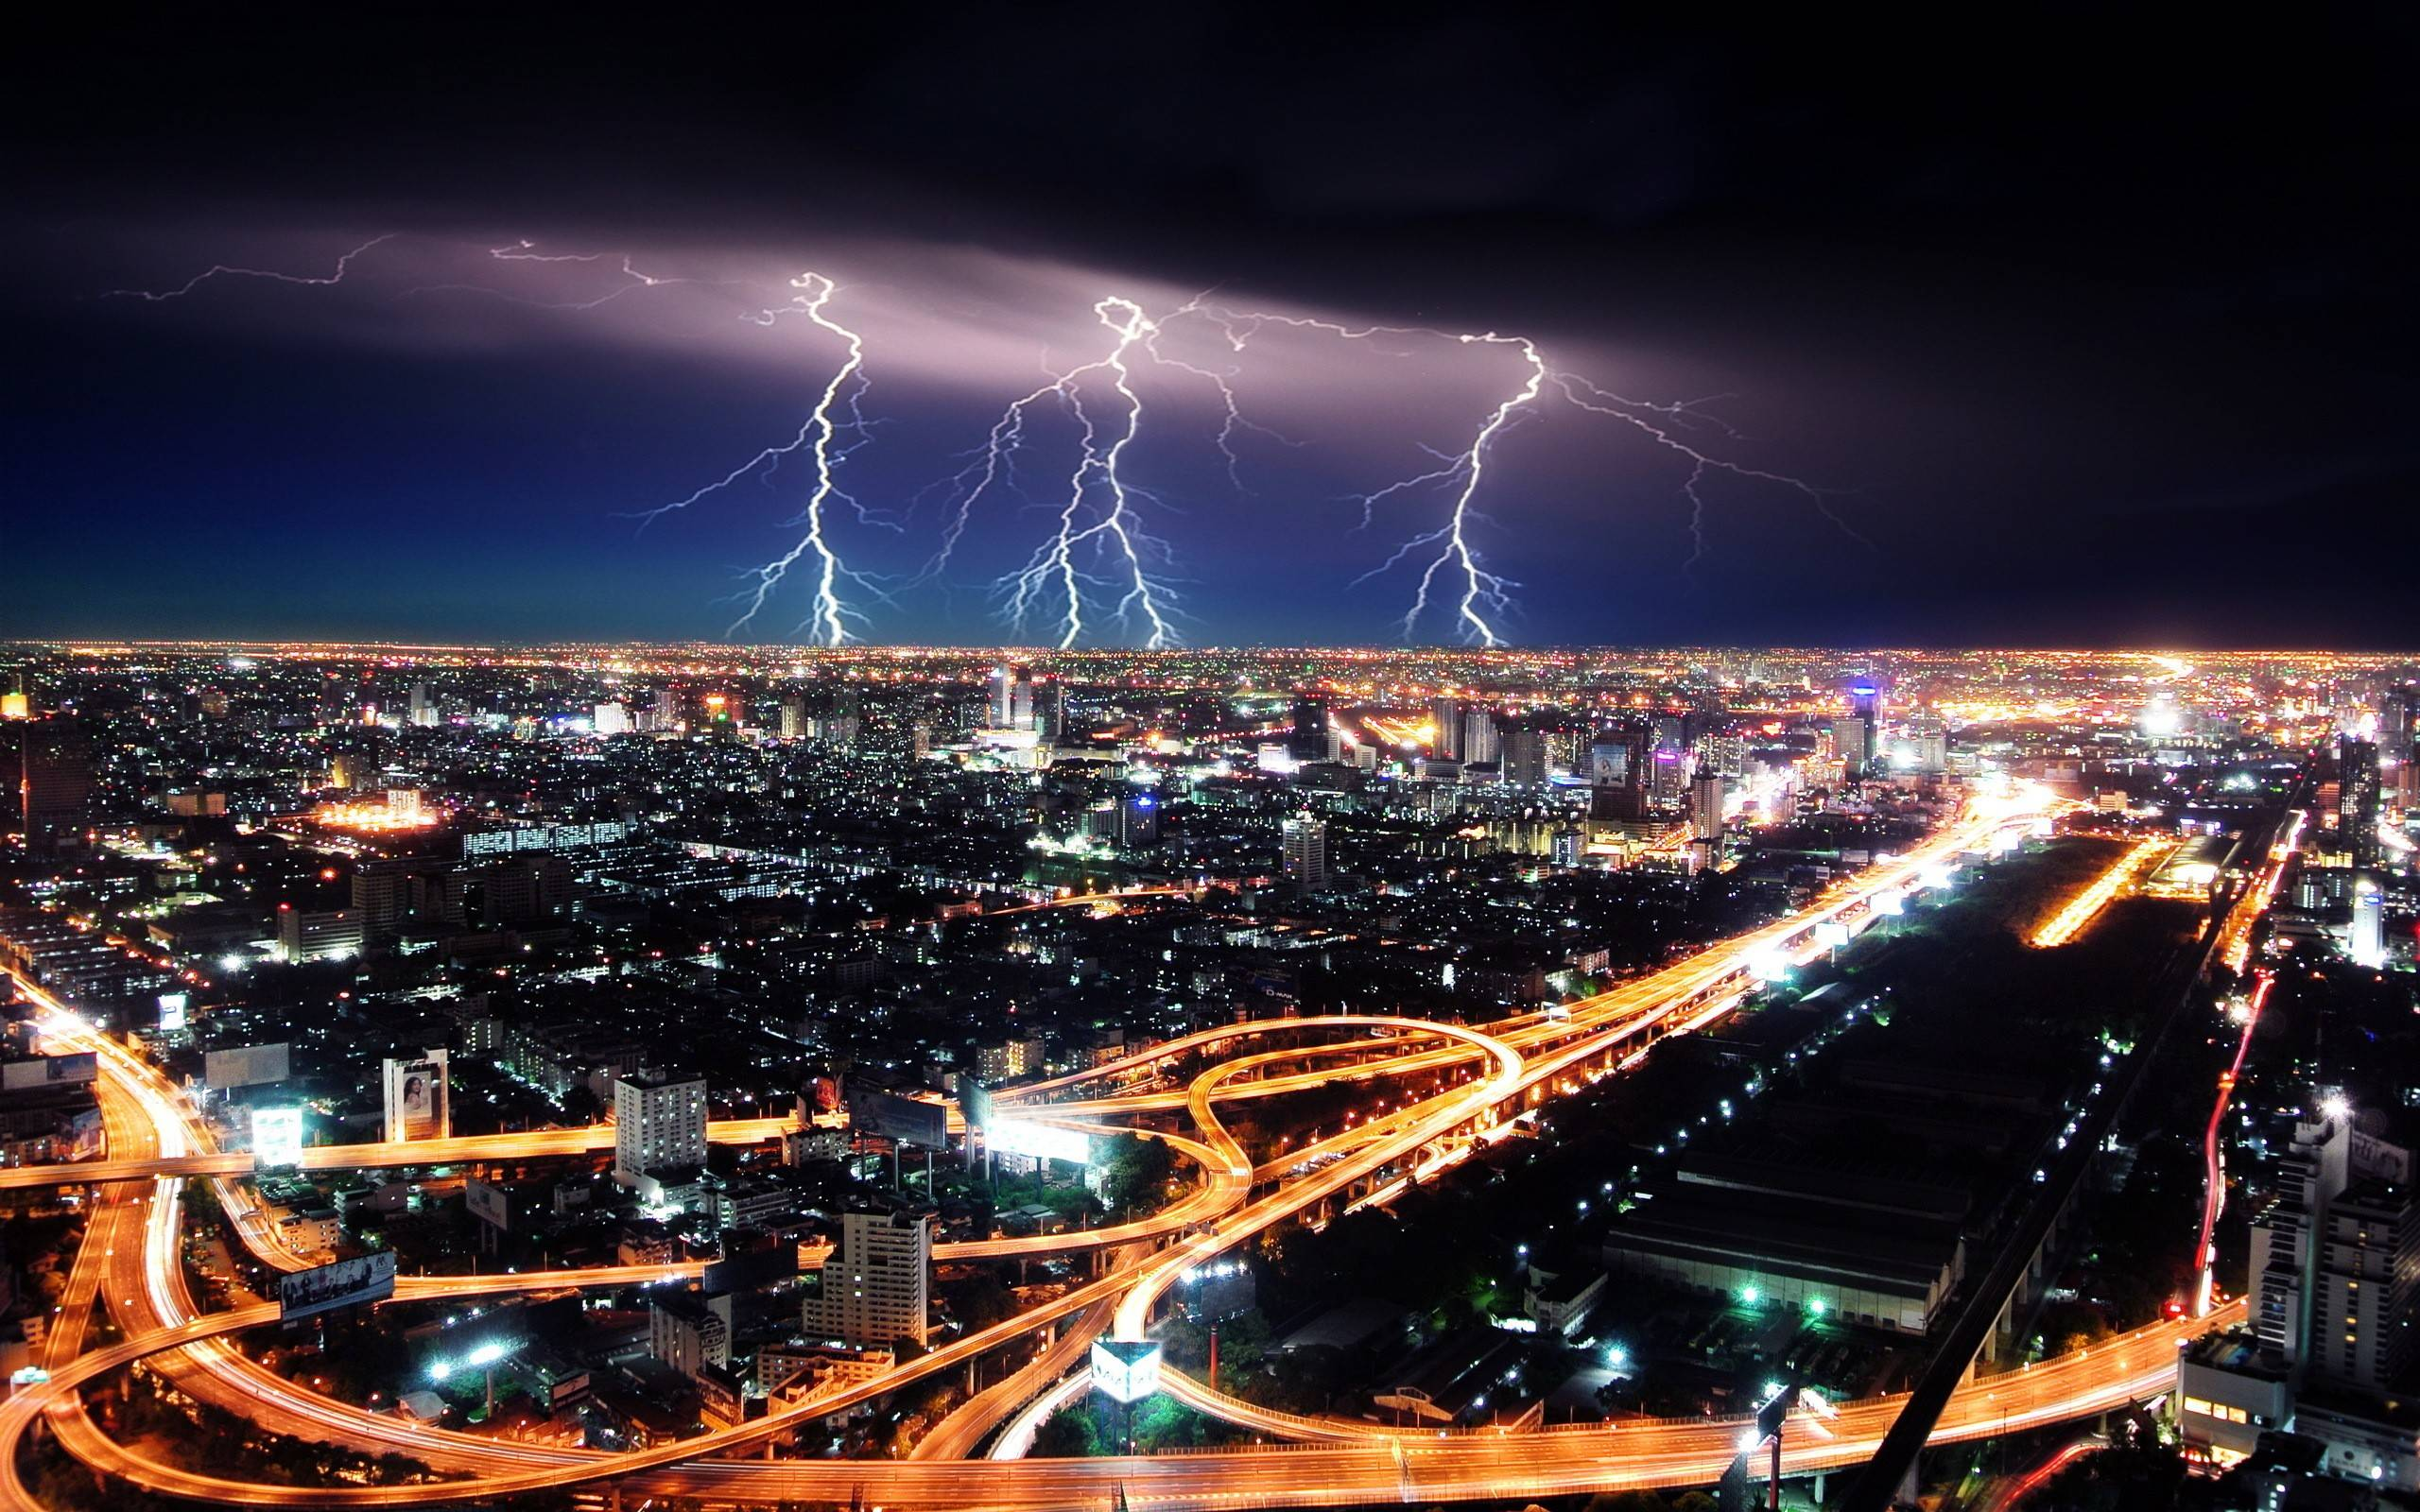 The Images of Night Lights Storm Lightning Cities HD Wallpaper ...